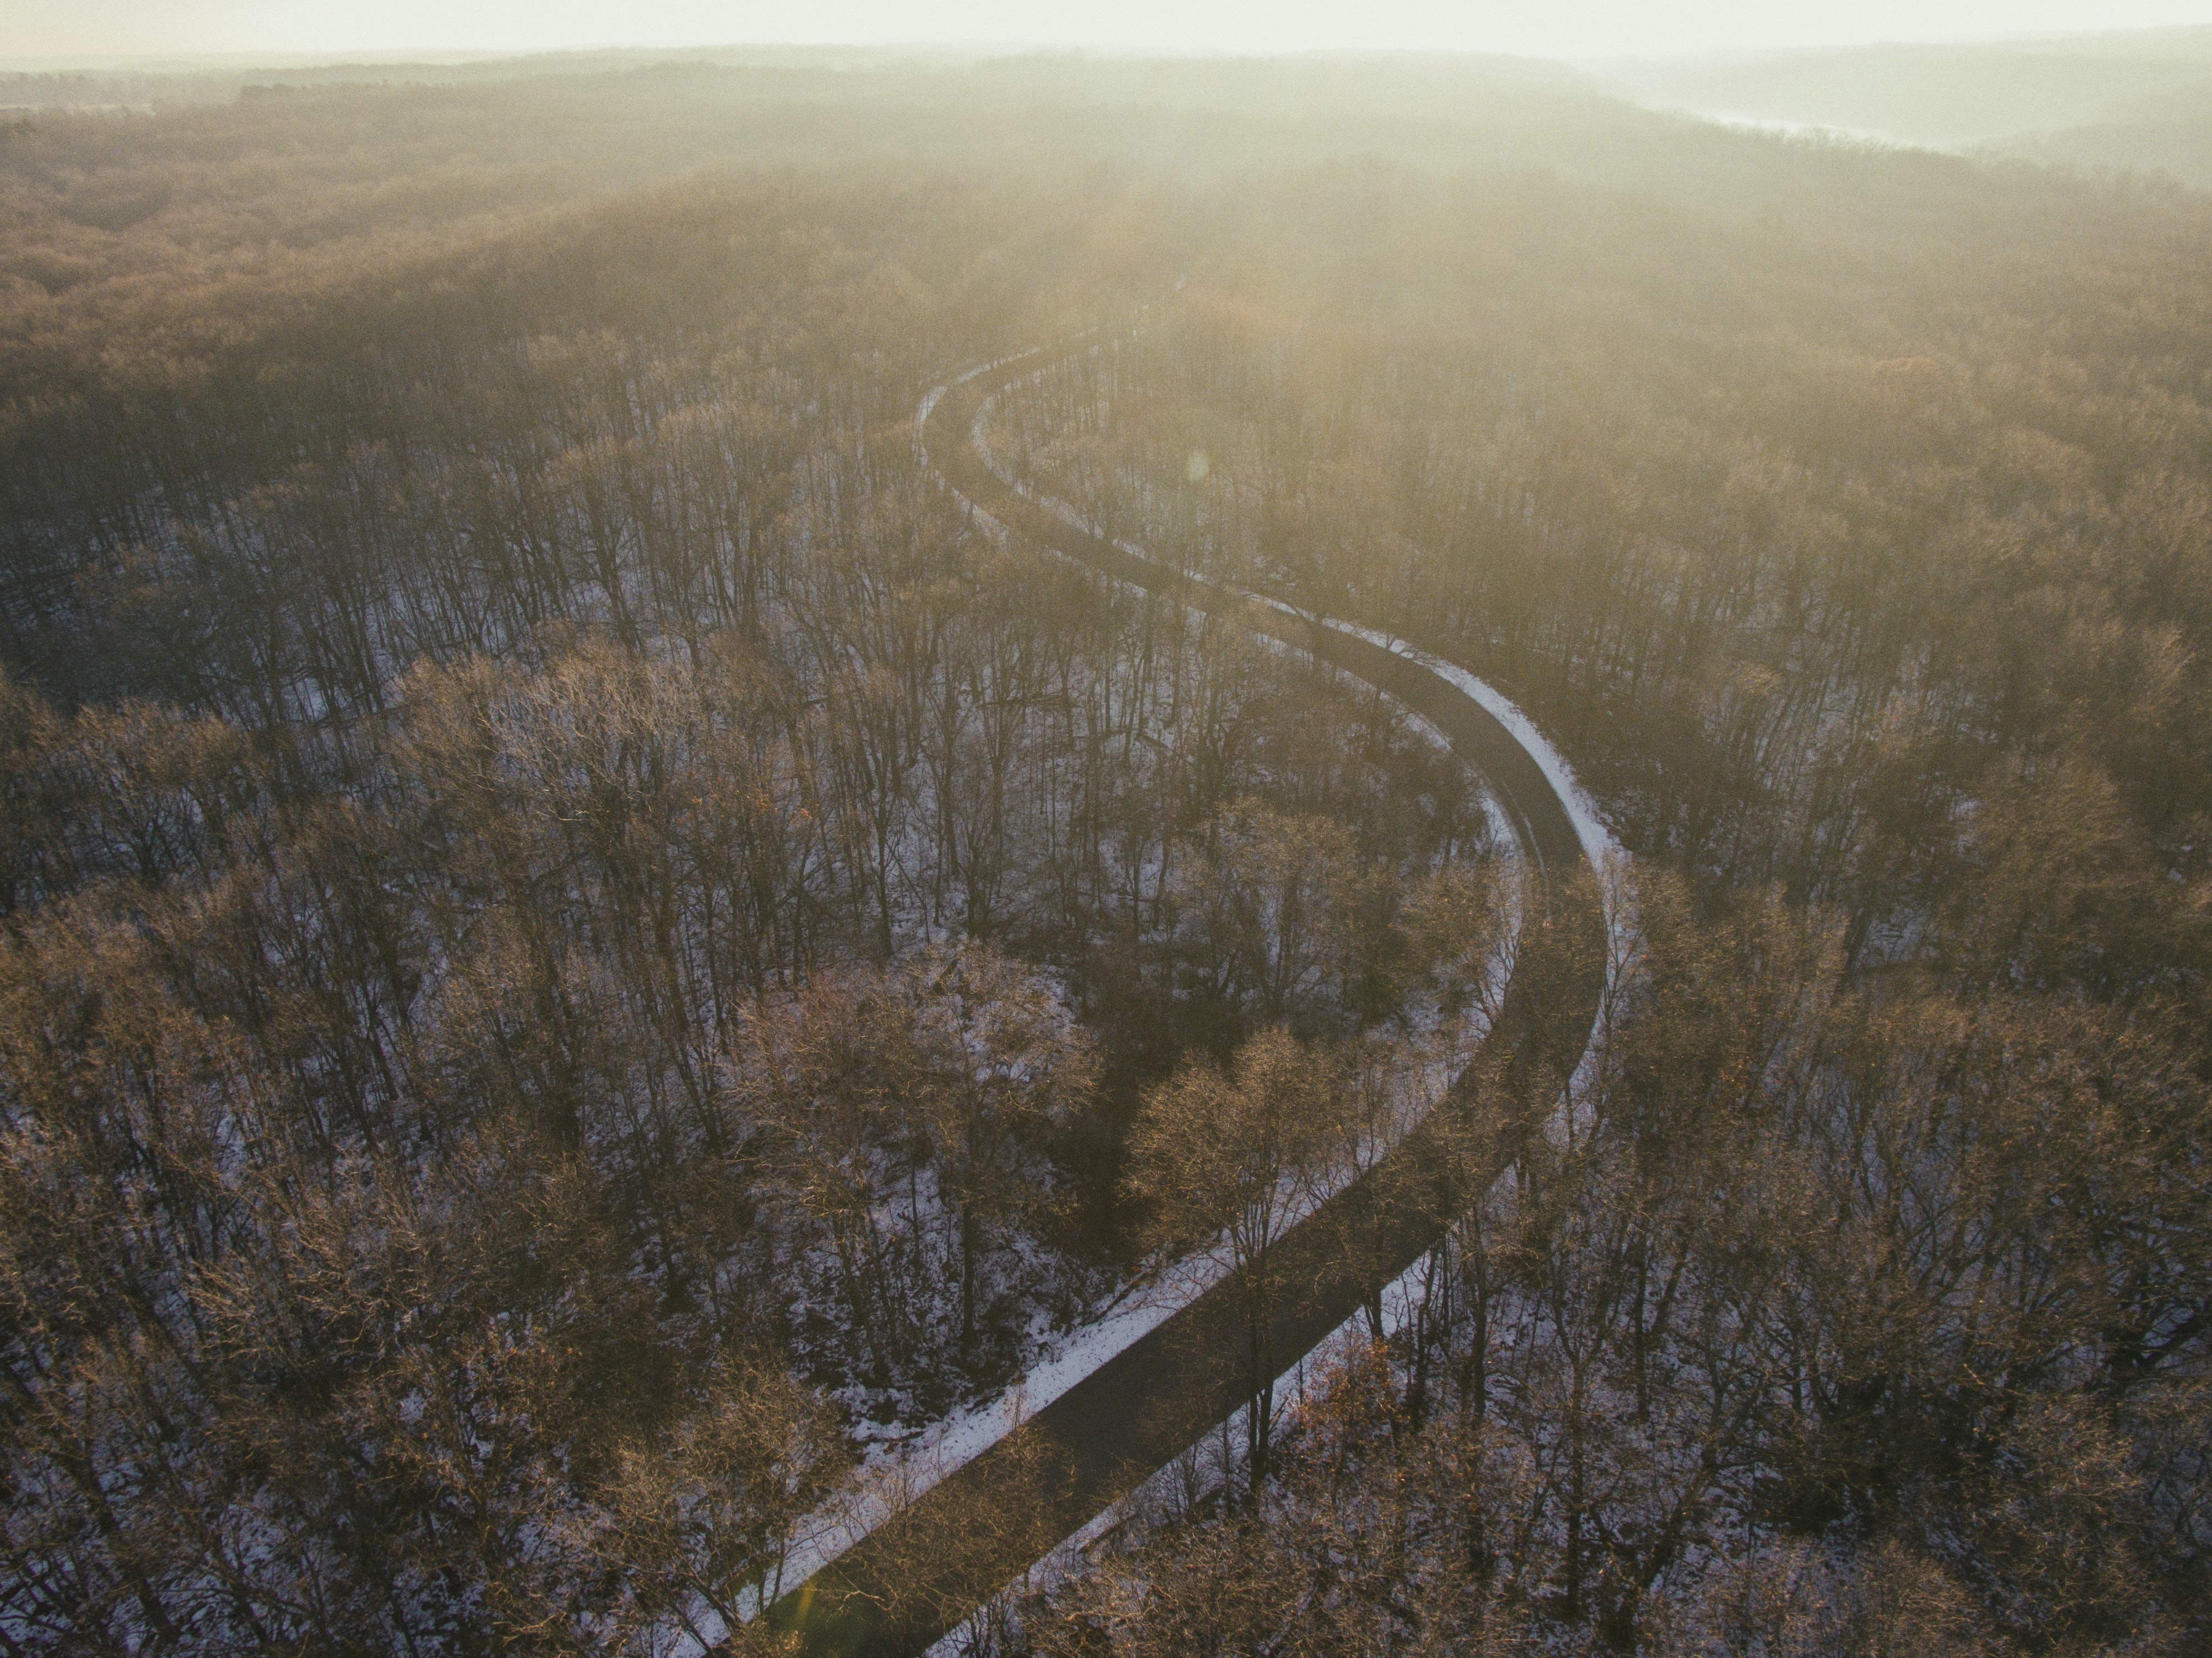 Drone shot of a winding road through a forest in Holly, Michigan on a winter's day